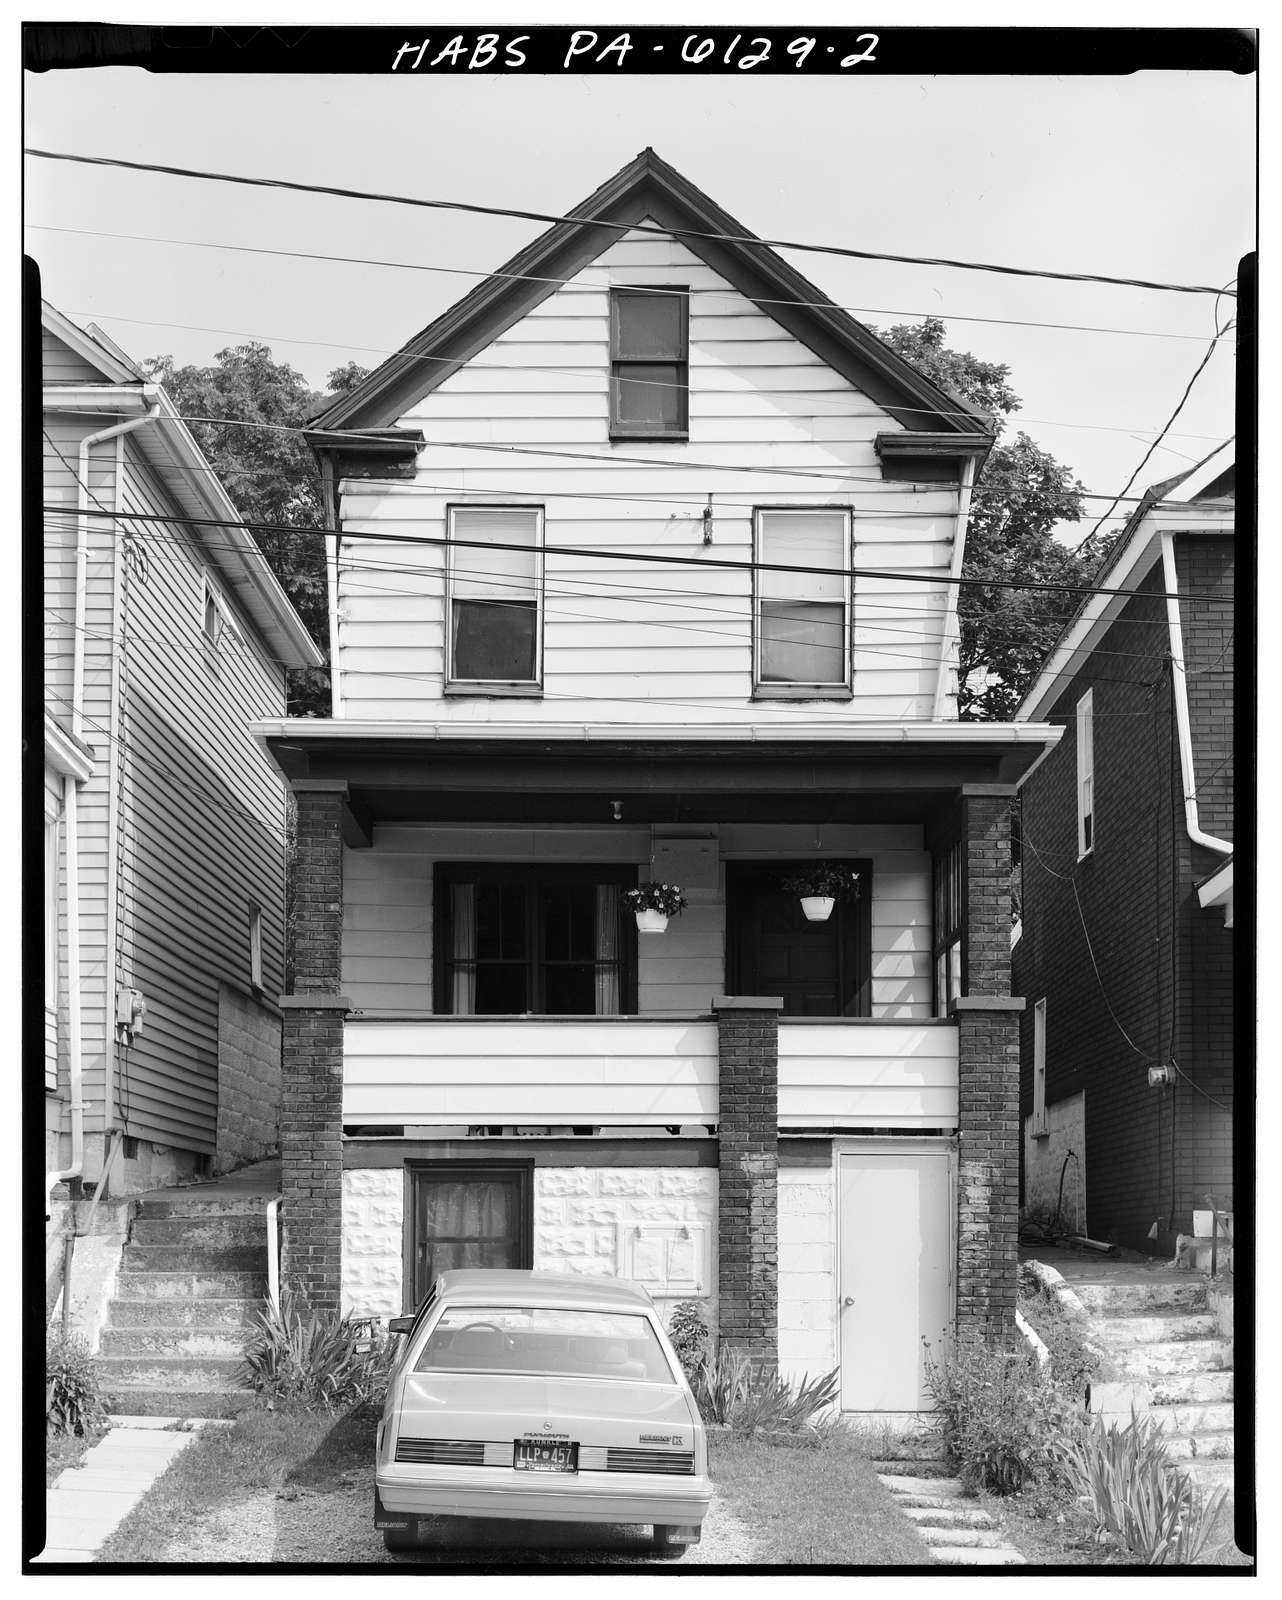 212 North Fourth Street (House), Jeannette, Westmoreland County, PA